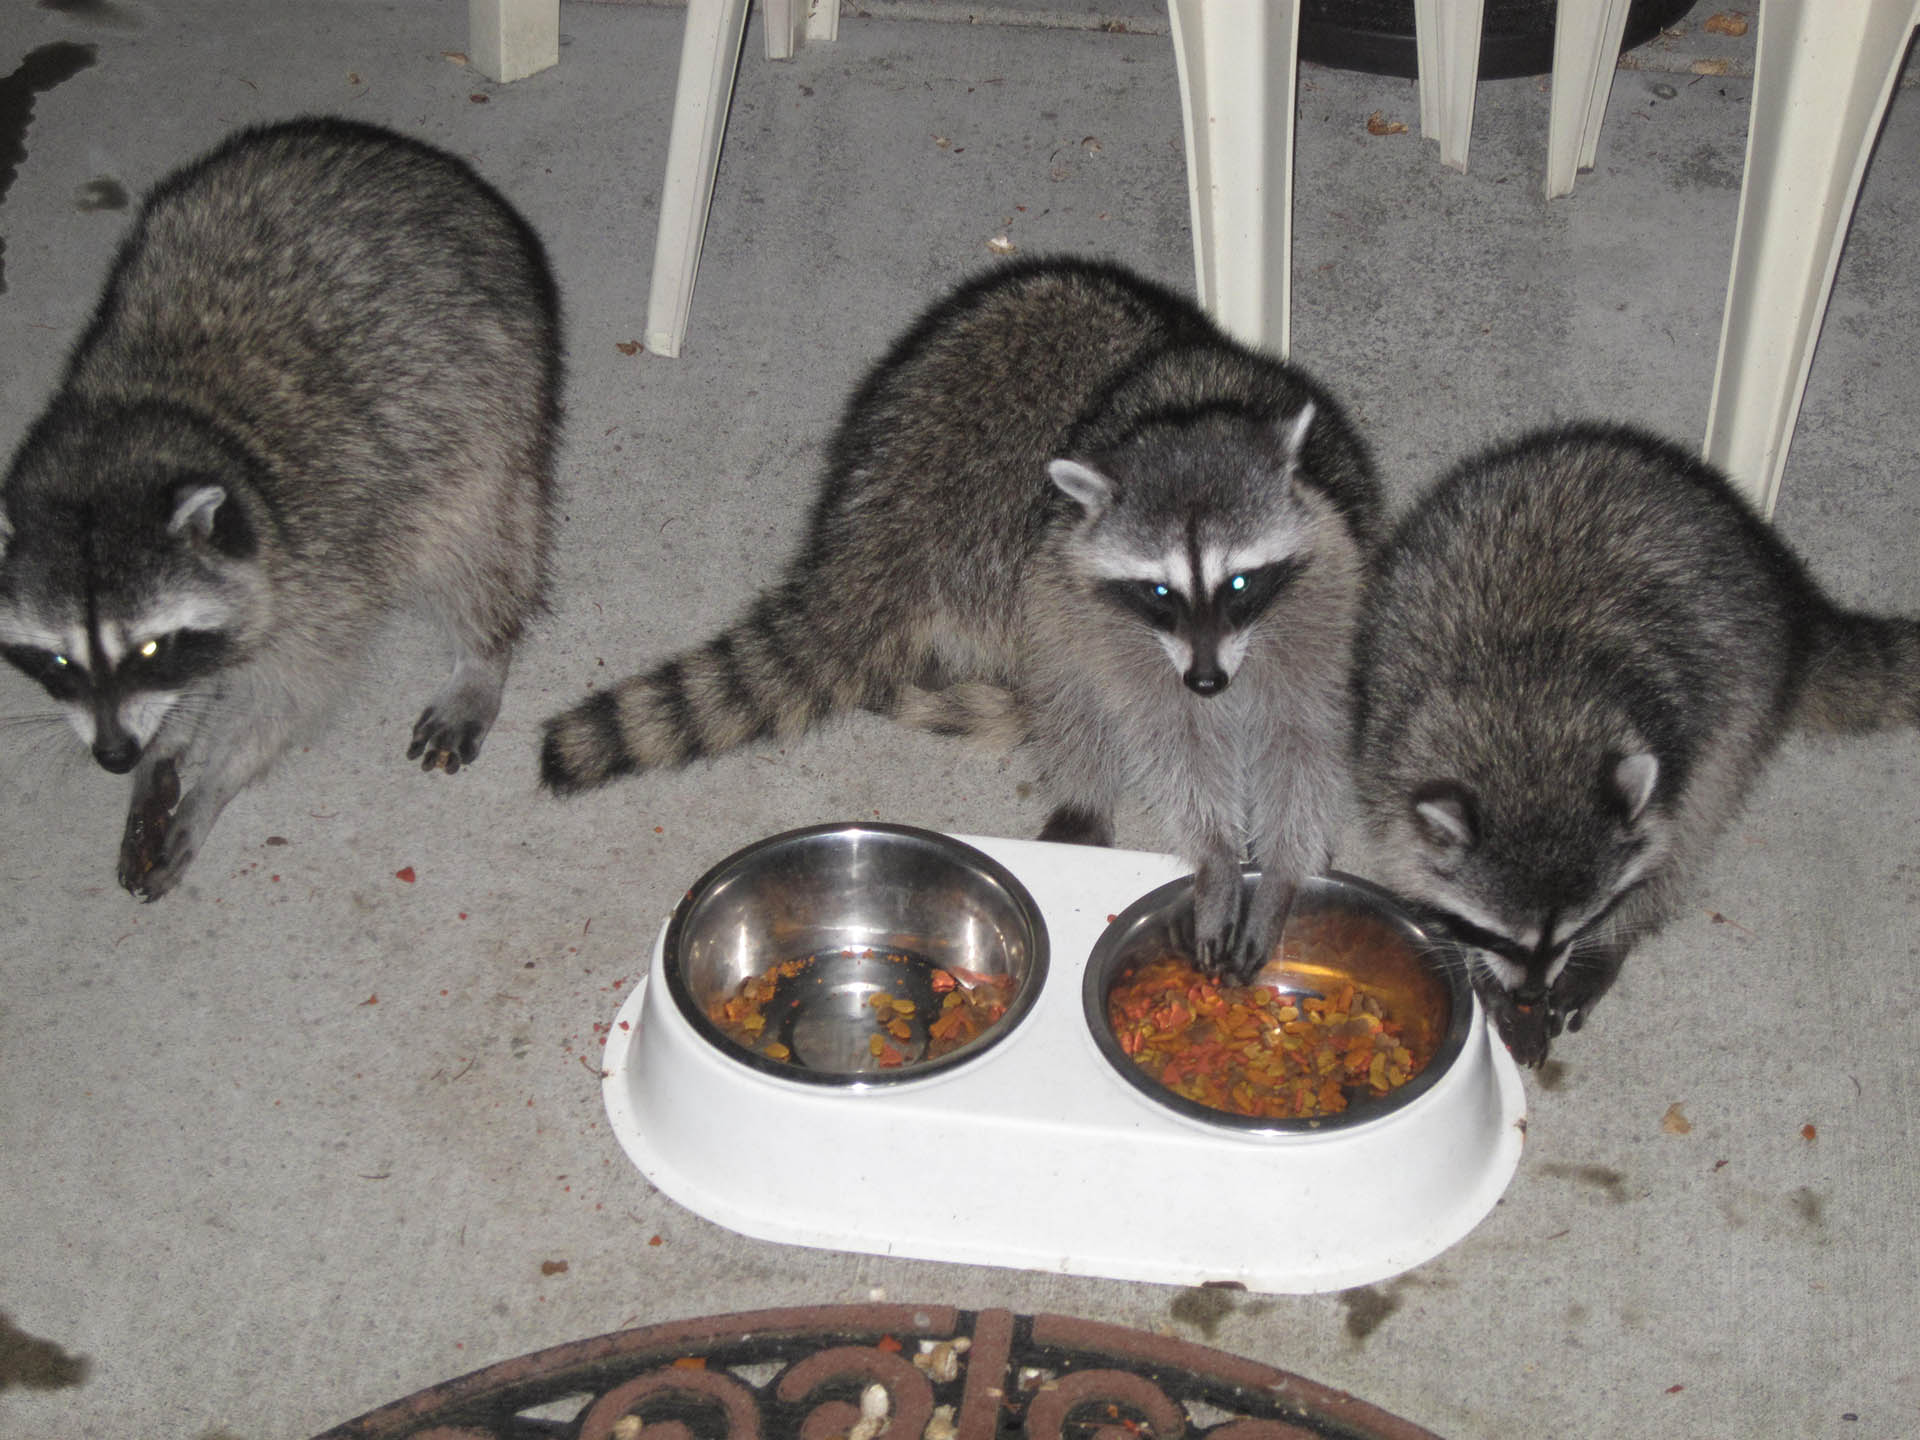 Raccoons